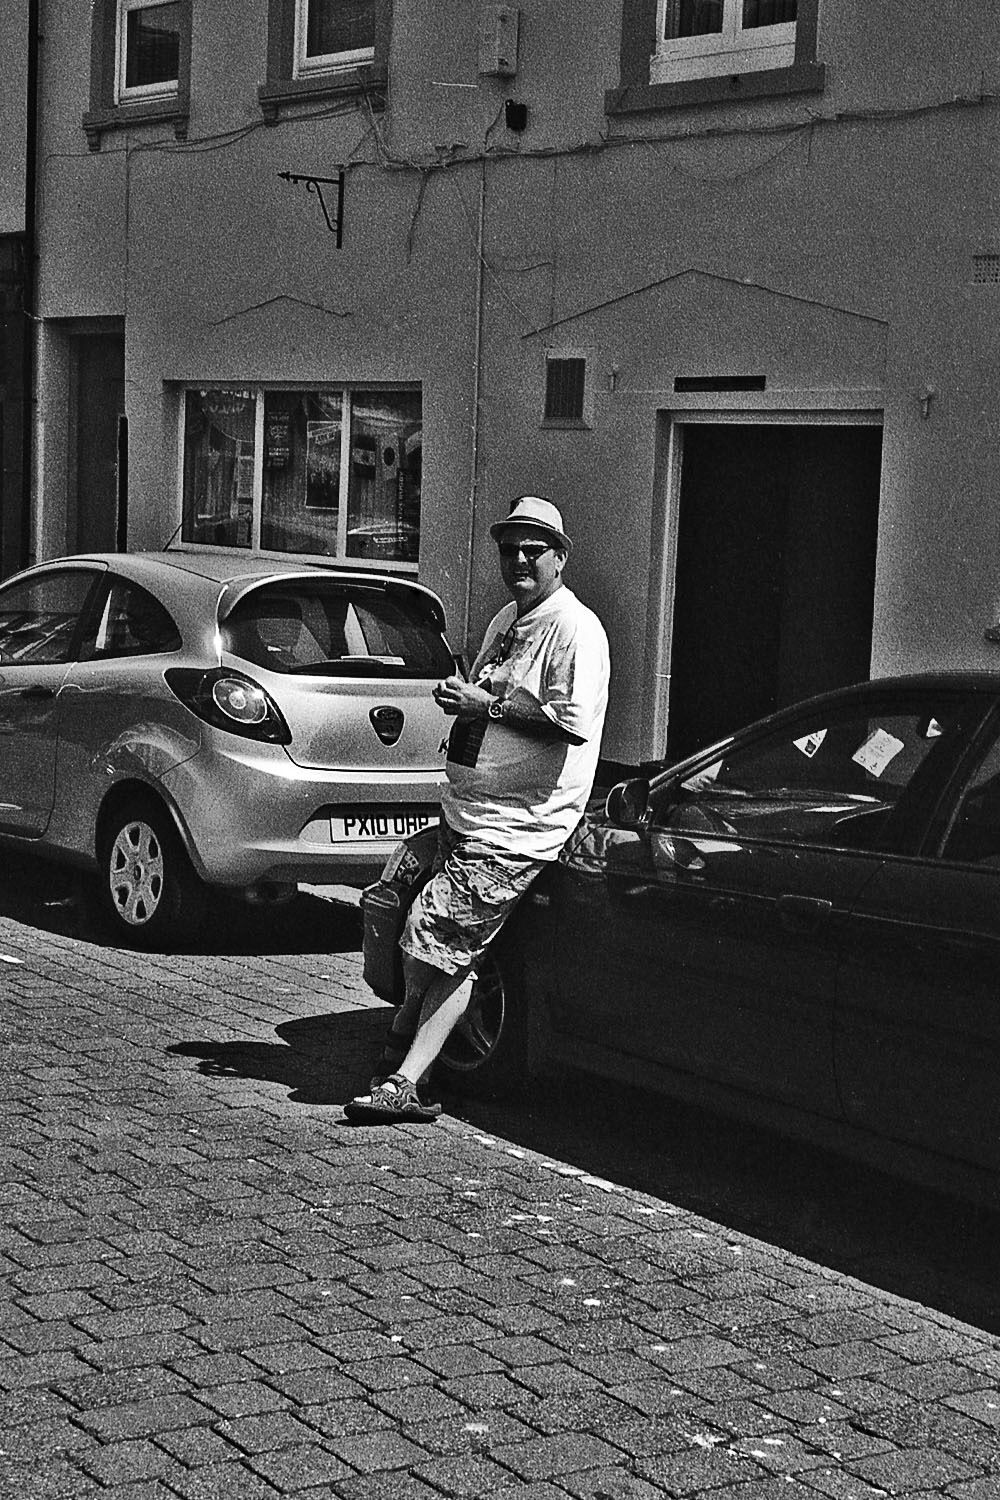 man leans against car whitehaven street photography uk photographer kevin shelley prints for sale leica m2 jupiter 8 50 f2